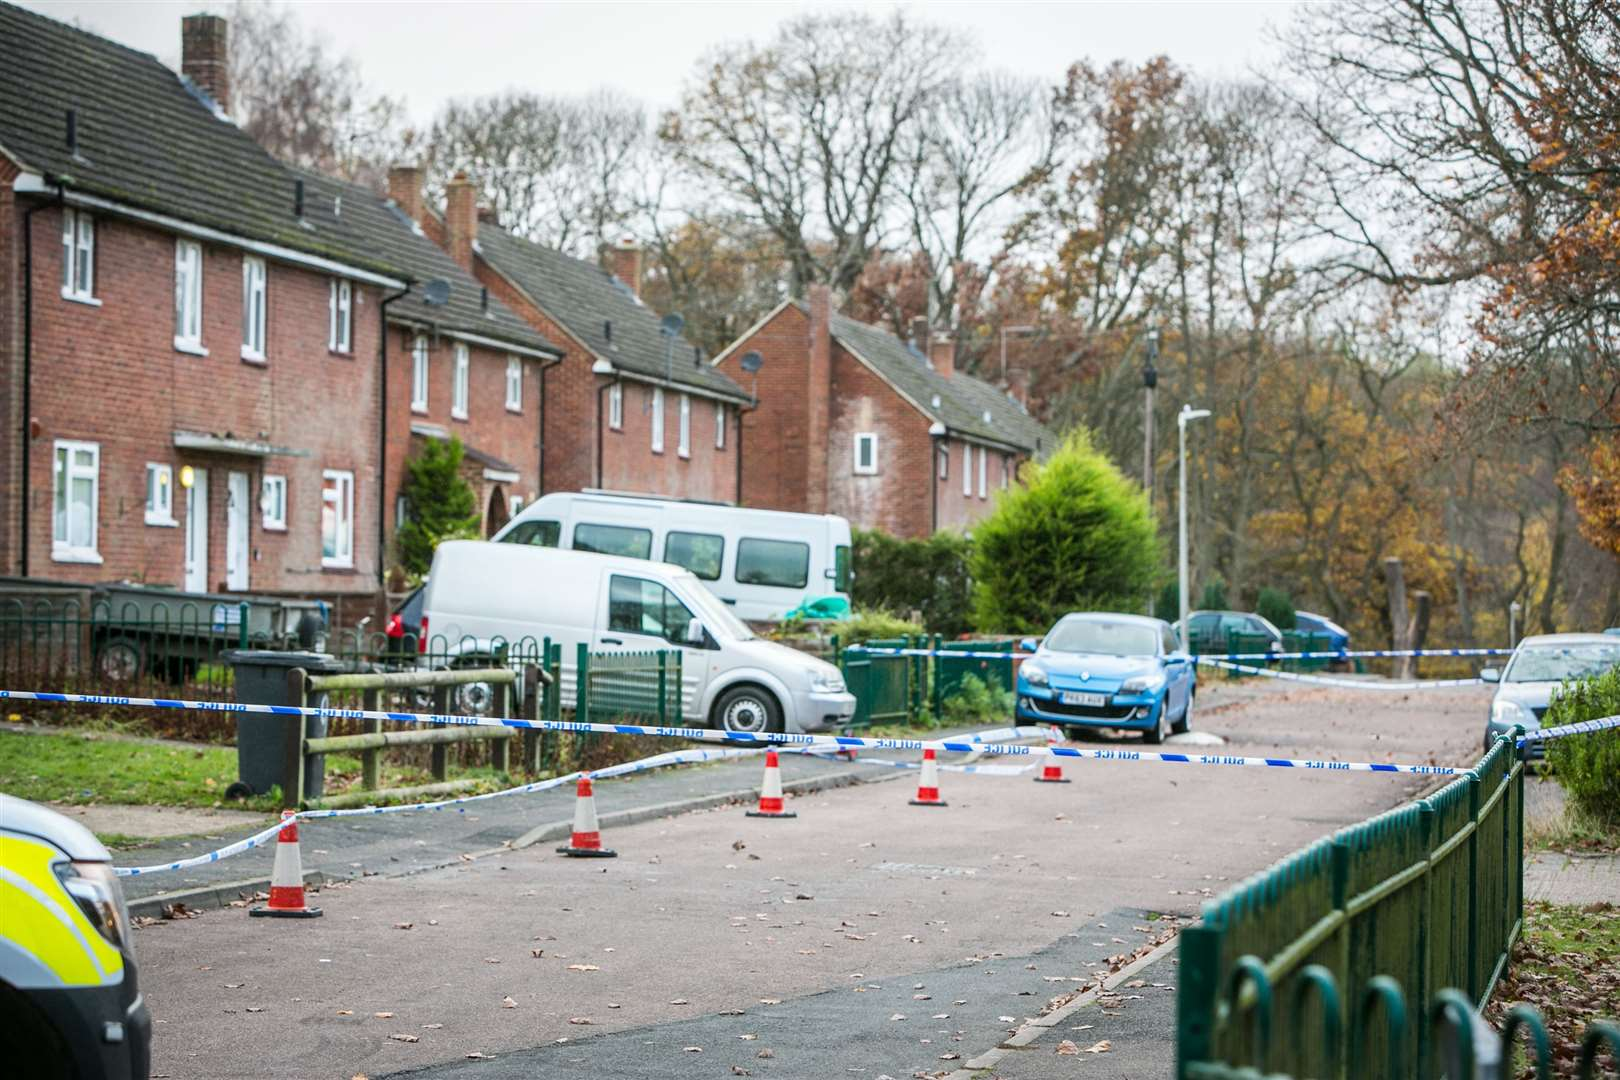 Police sealed off Spitfire Road and launched a murder investigation